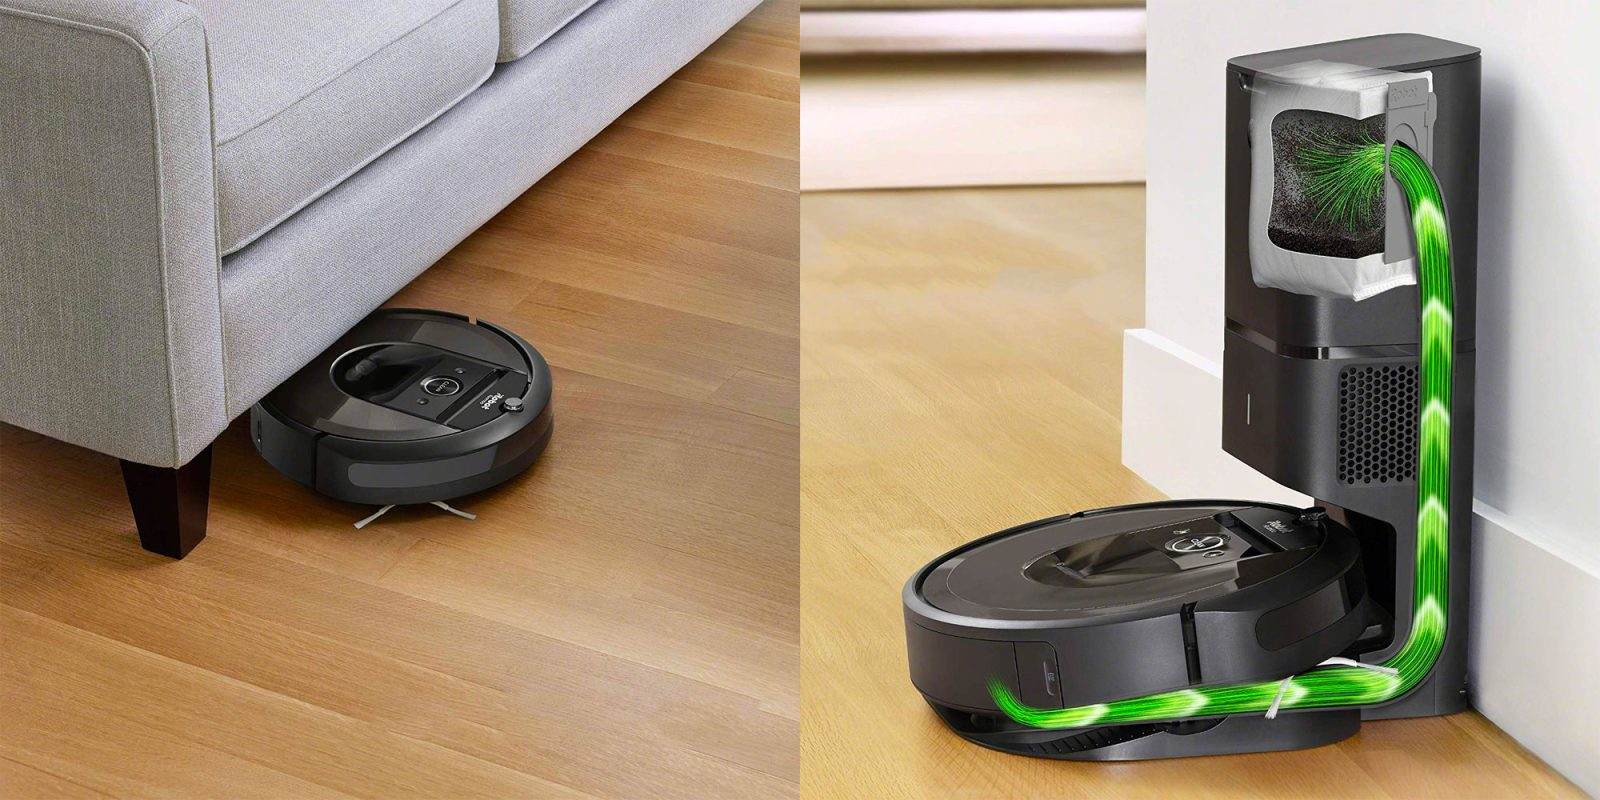 The Roomba i7+ robotic vacuum empties itself and more for $899 ($200 off)